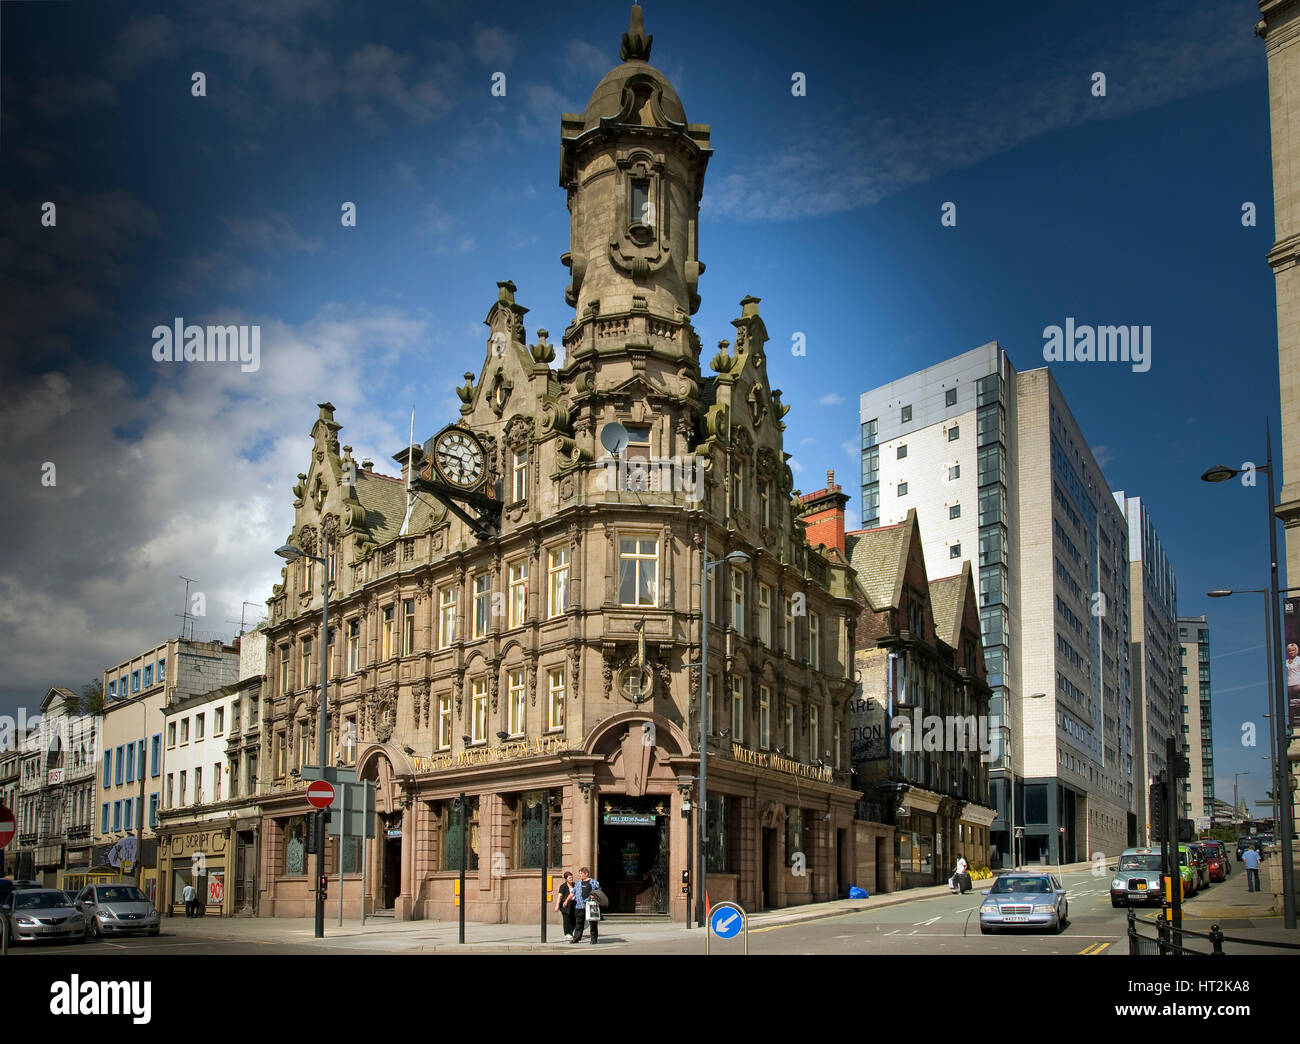 The Vines public house in Lime street Liverpool. Known as the 'Big House' - Stock Image